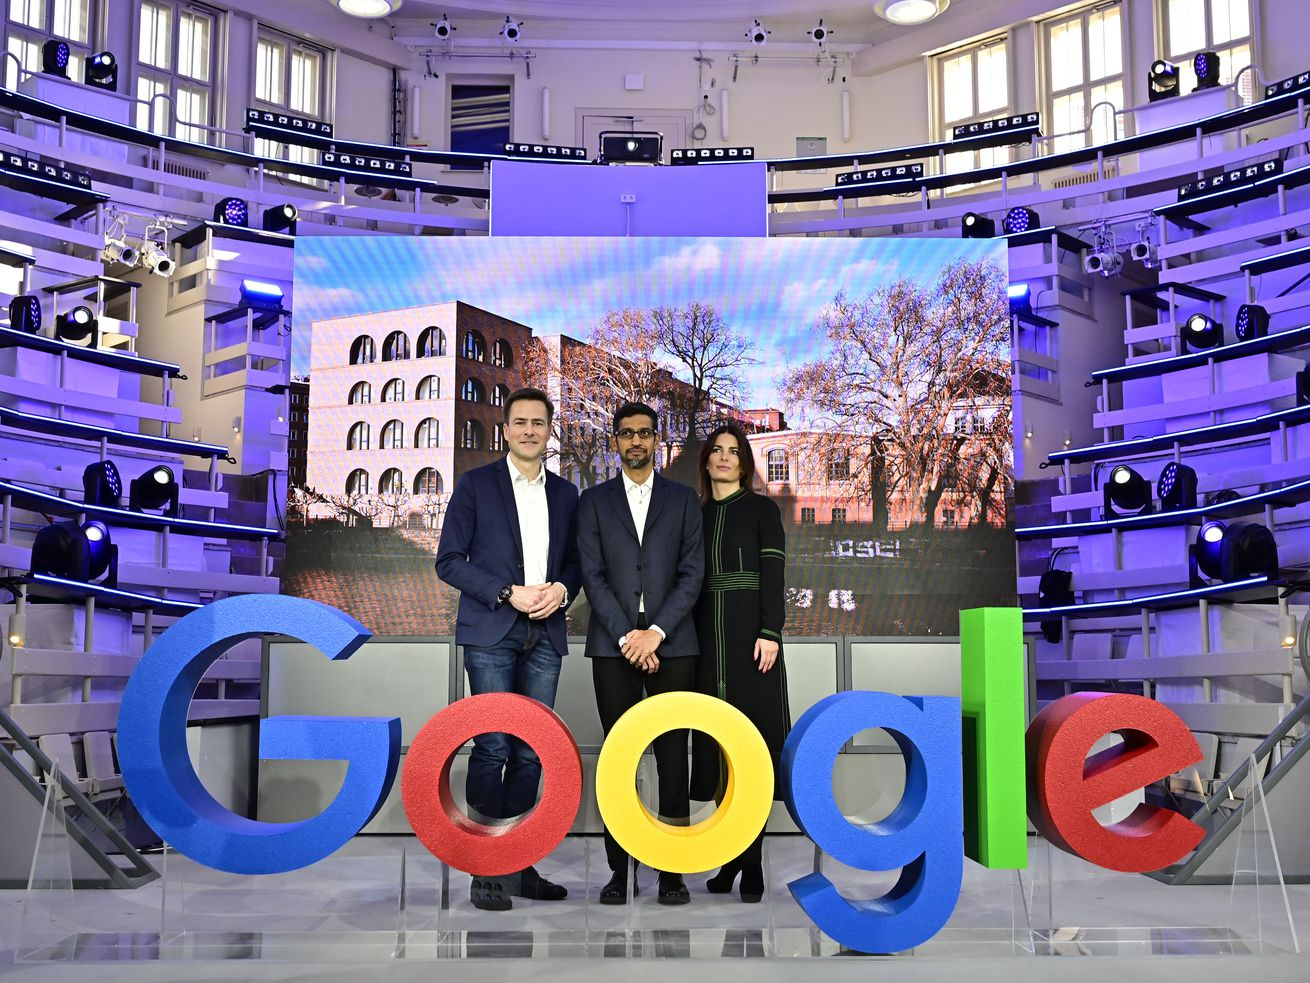 """Google CEO Sundar Pichai and other Google leaders pose for the media at the opening of a new Google office in Berlin by standing behind large letters spelling out """"Google."""""""